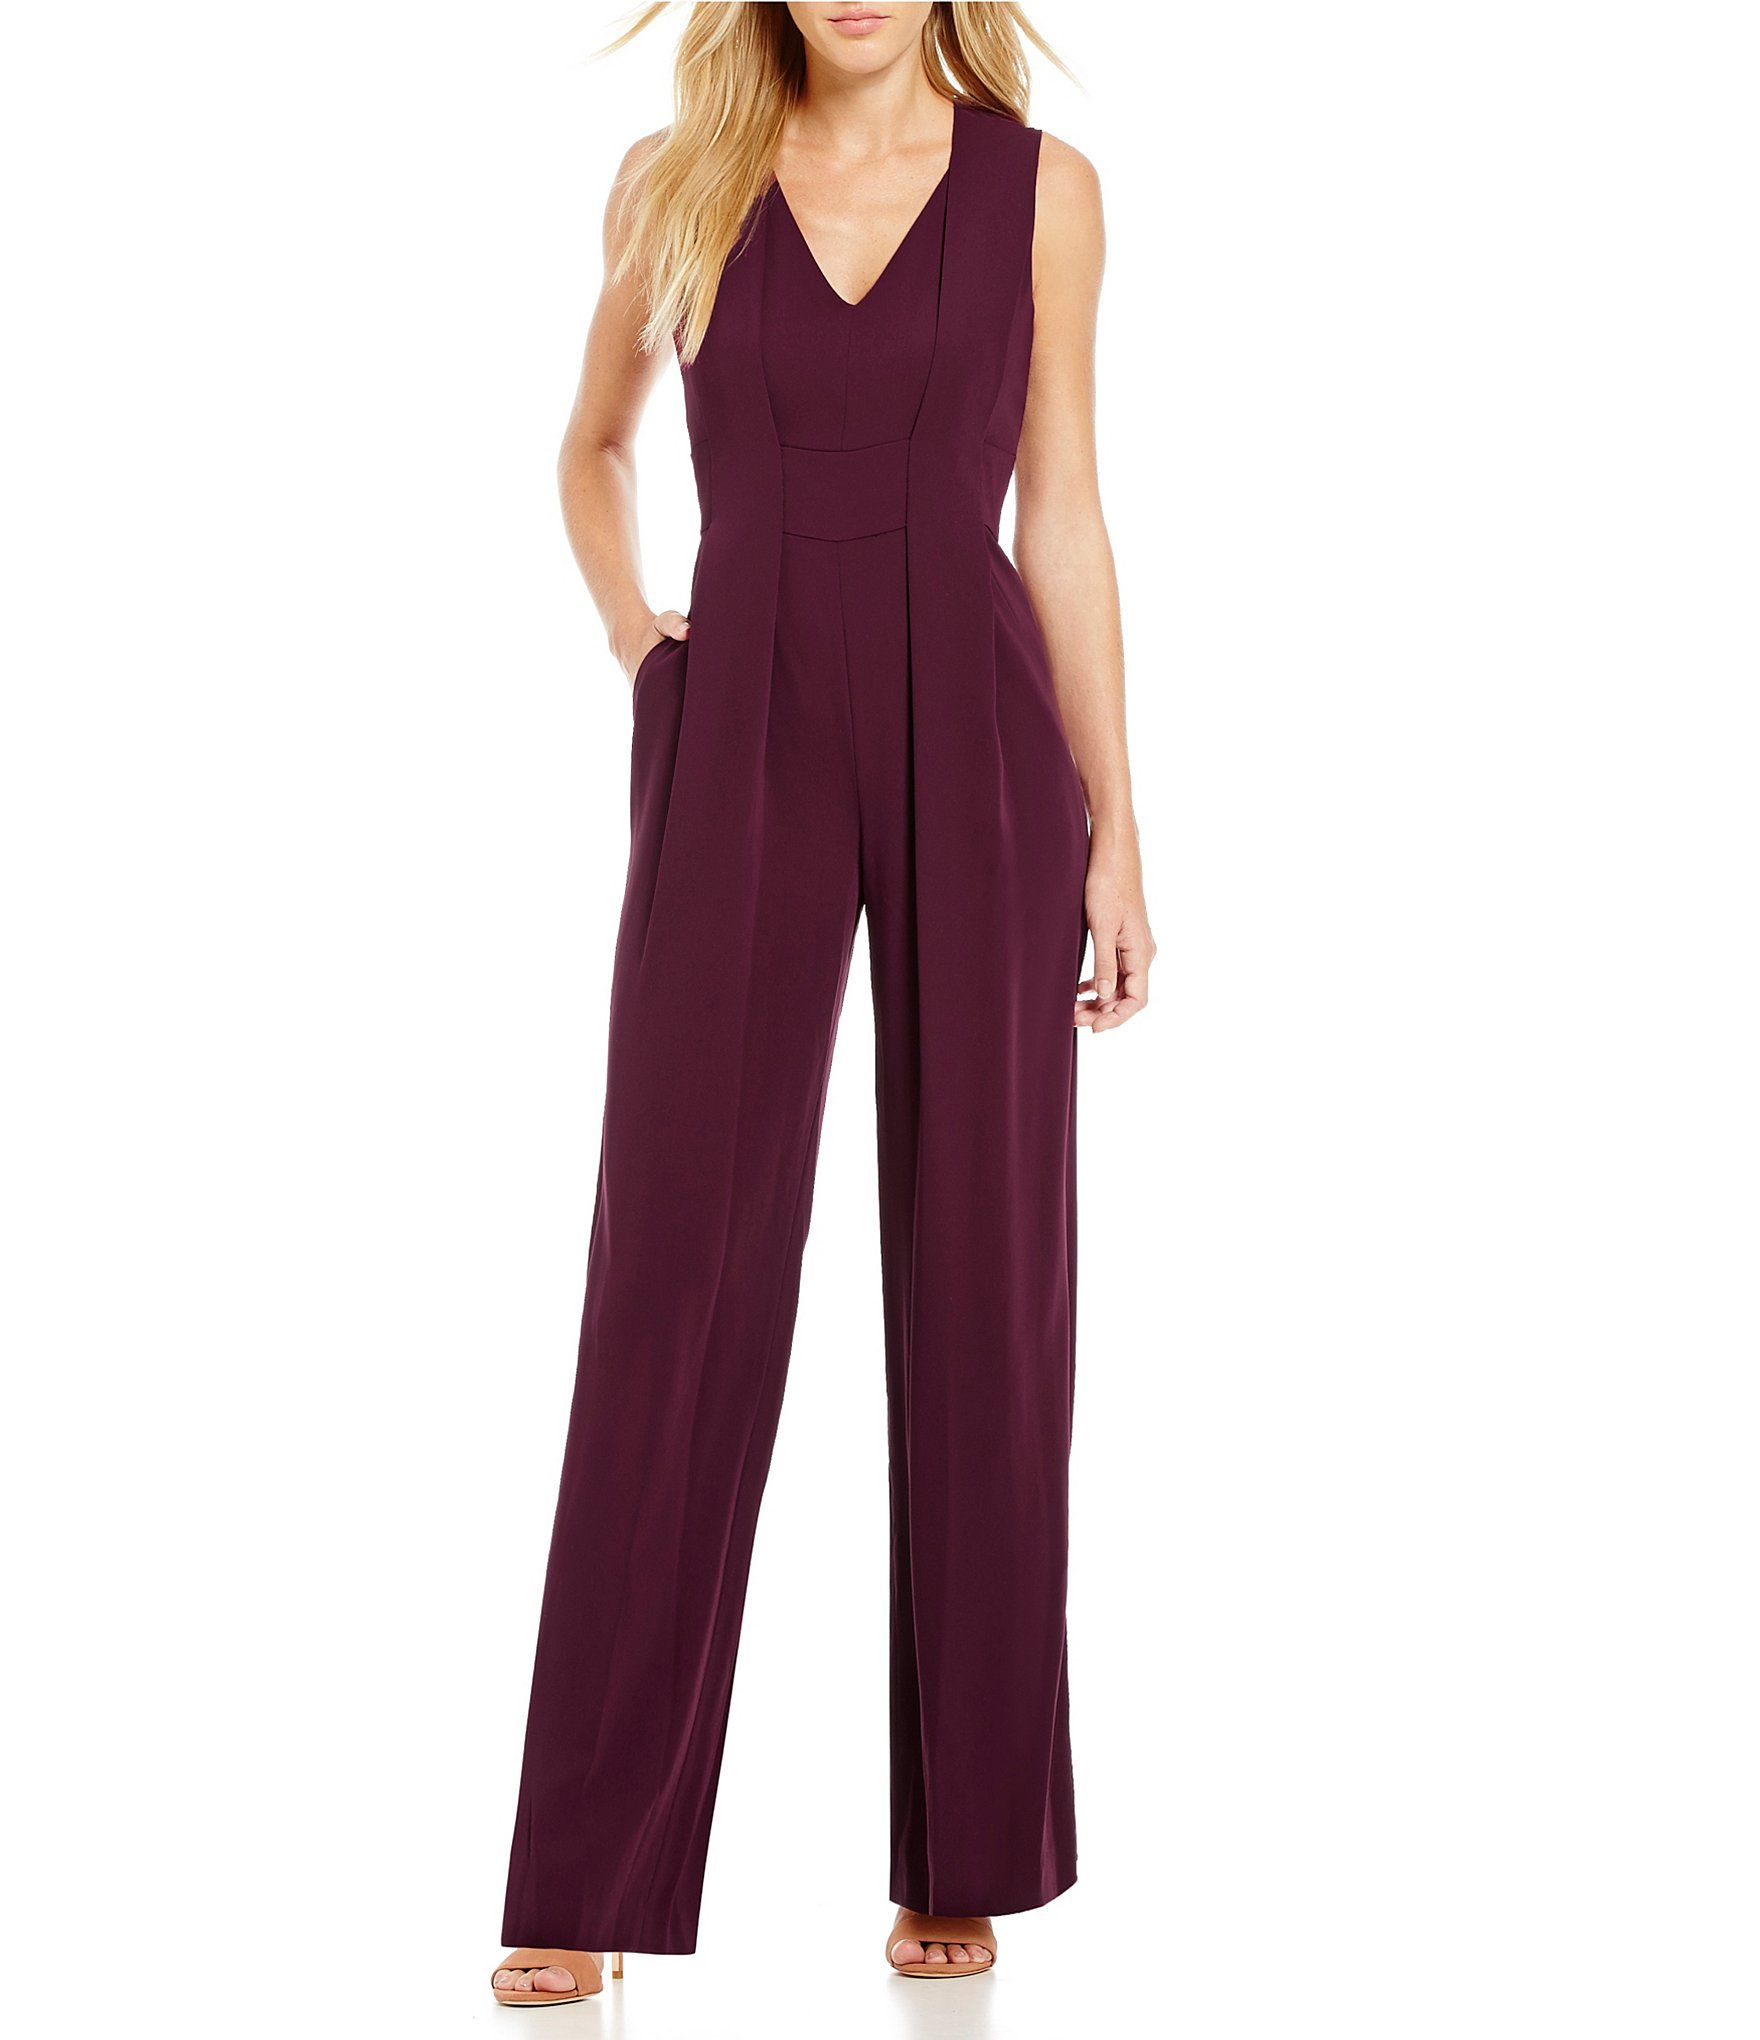 15 Jumpsuits You Can Absolutely Wear As A Wedding Guest Dress For The Wedding Wedding Guest Dress Guest Dresses Jumpsuit Dressy